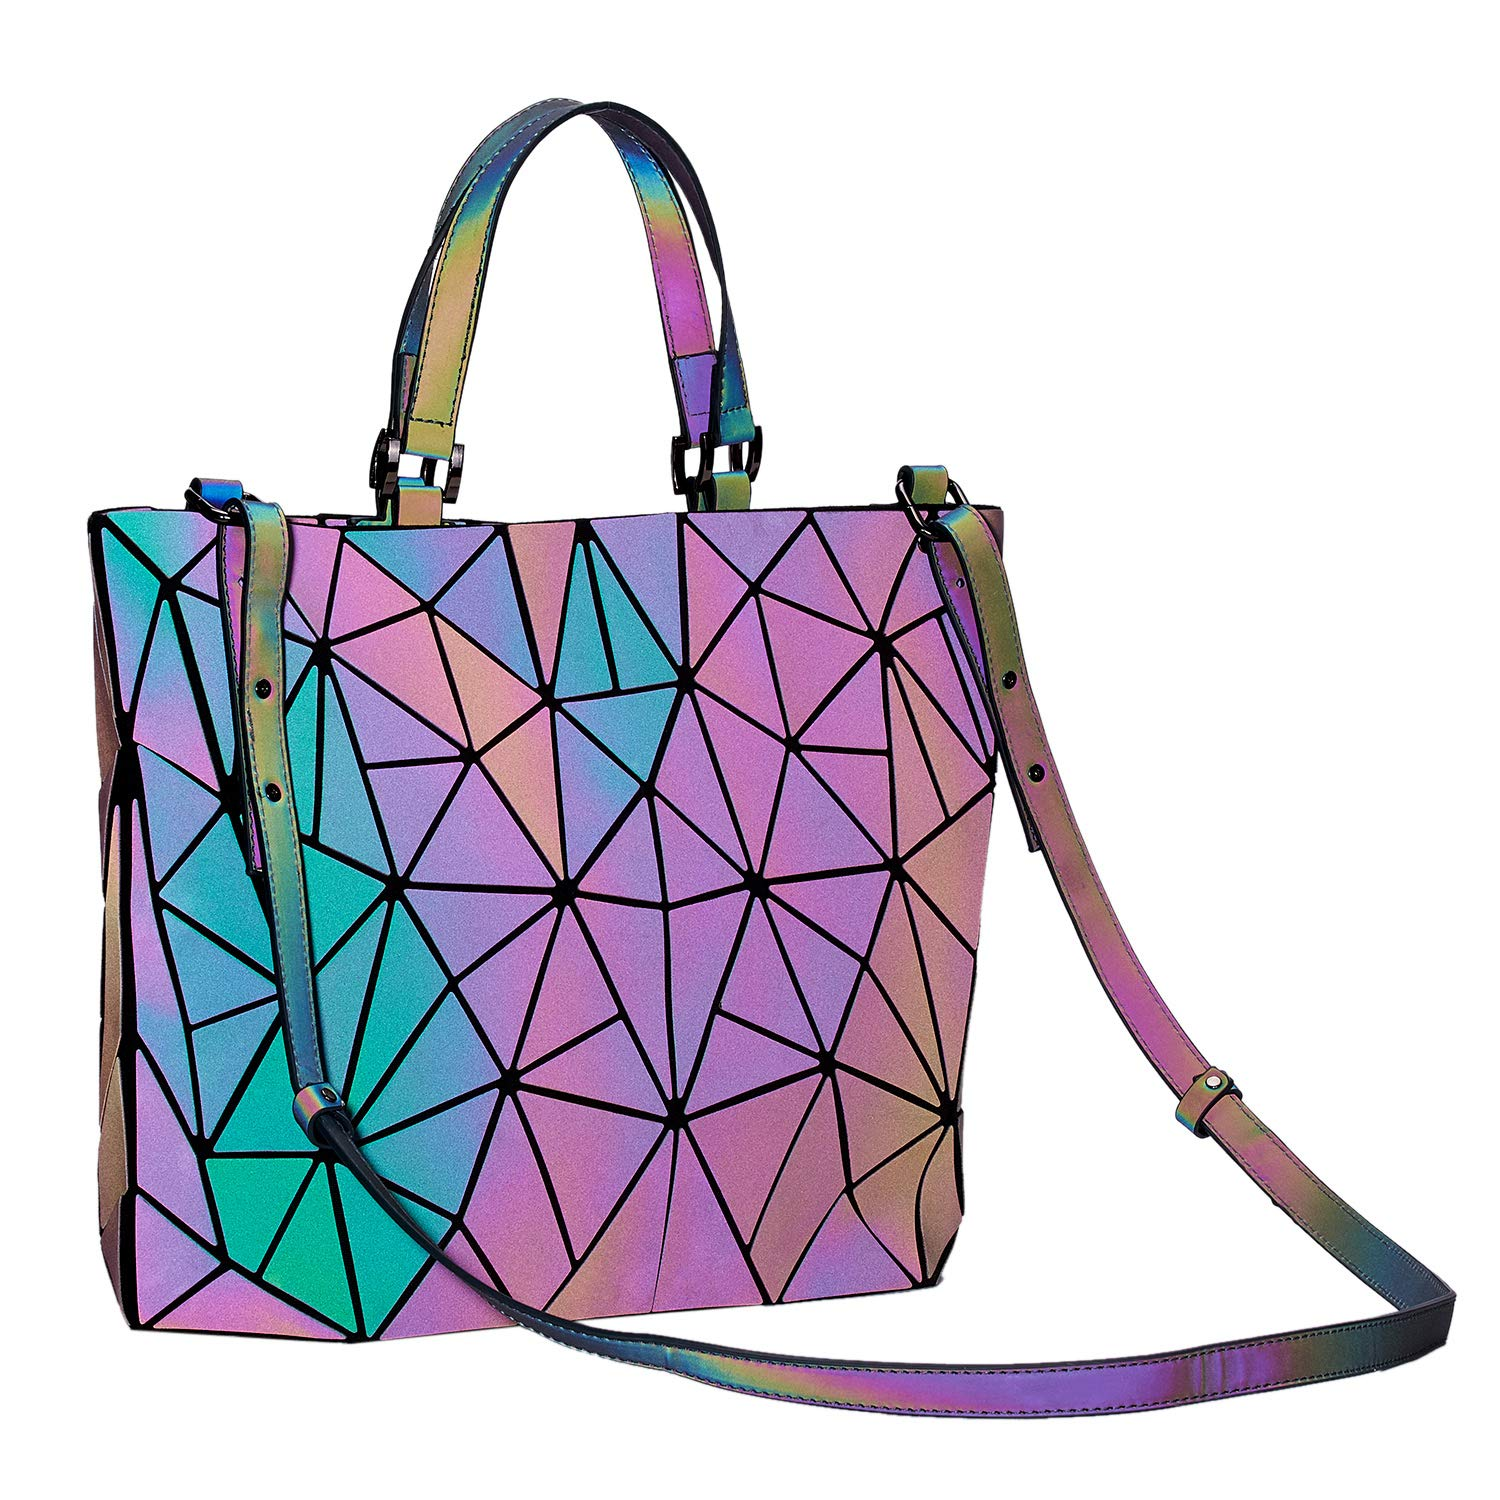 Harlermoon Geometric handbag Luminous women bag Holographich Purses Flash Reflactive purse and handbag Tote for Women